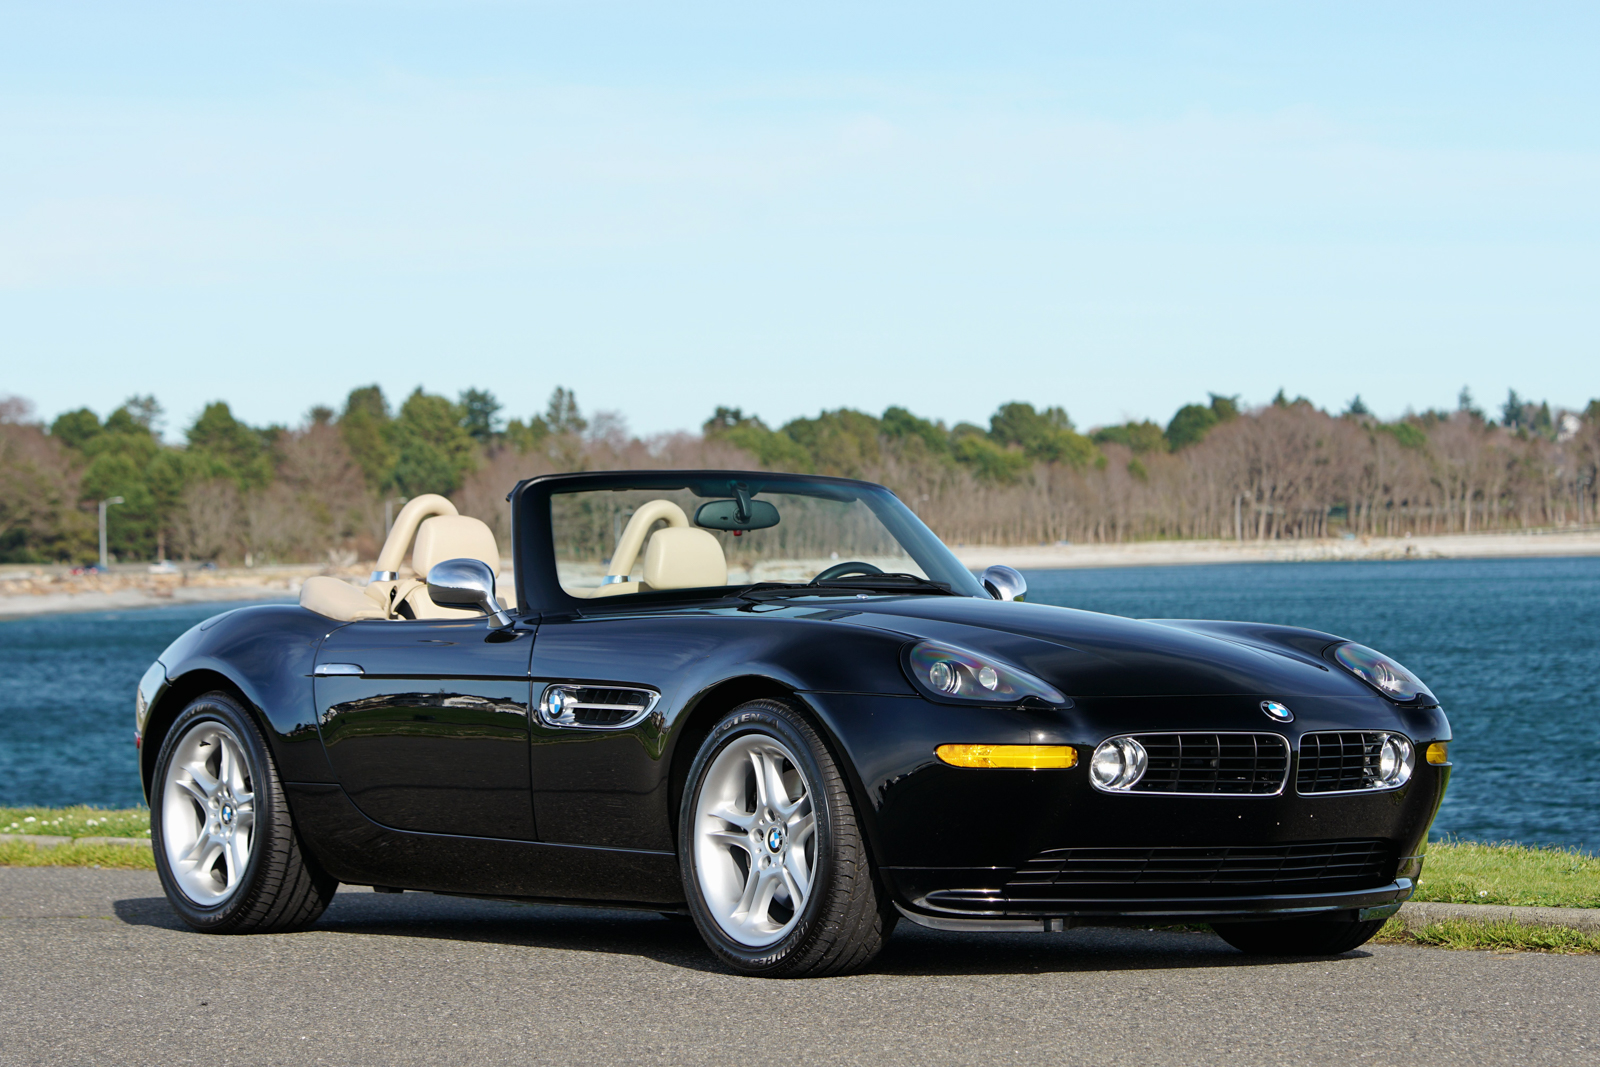 Bmw Z3 Specs Sport Coupe Carsaddiction Com 2007 Nissan